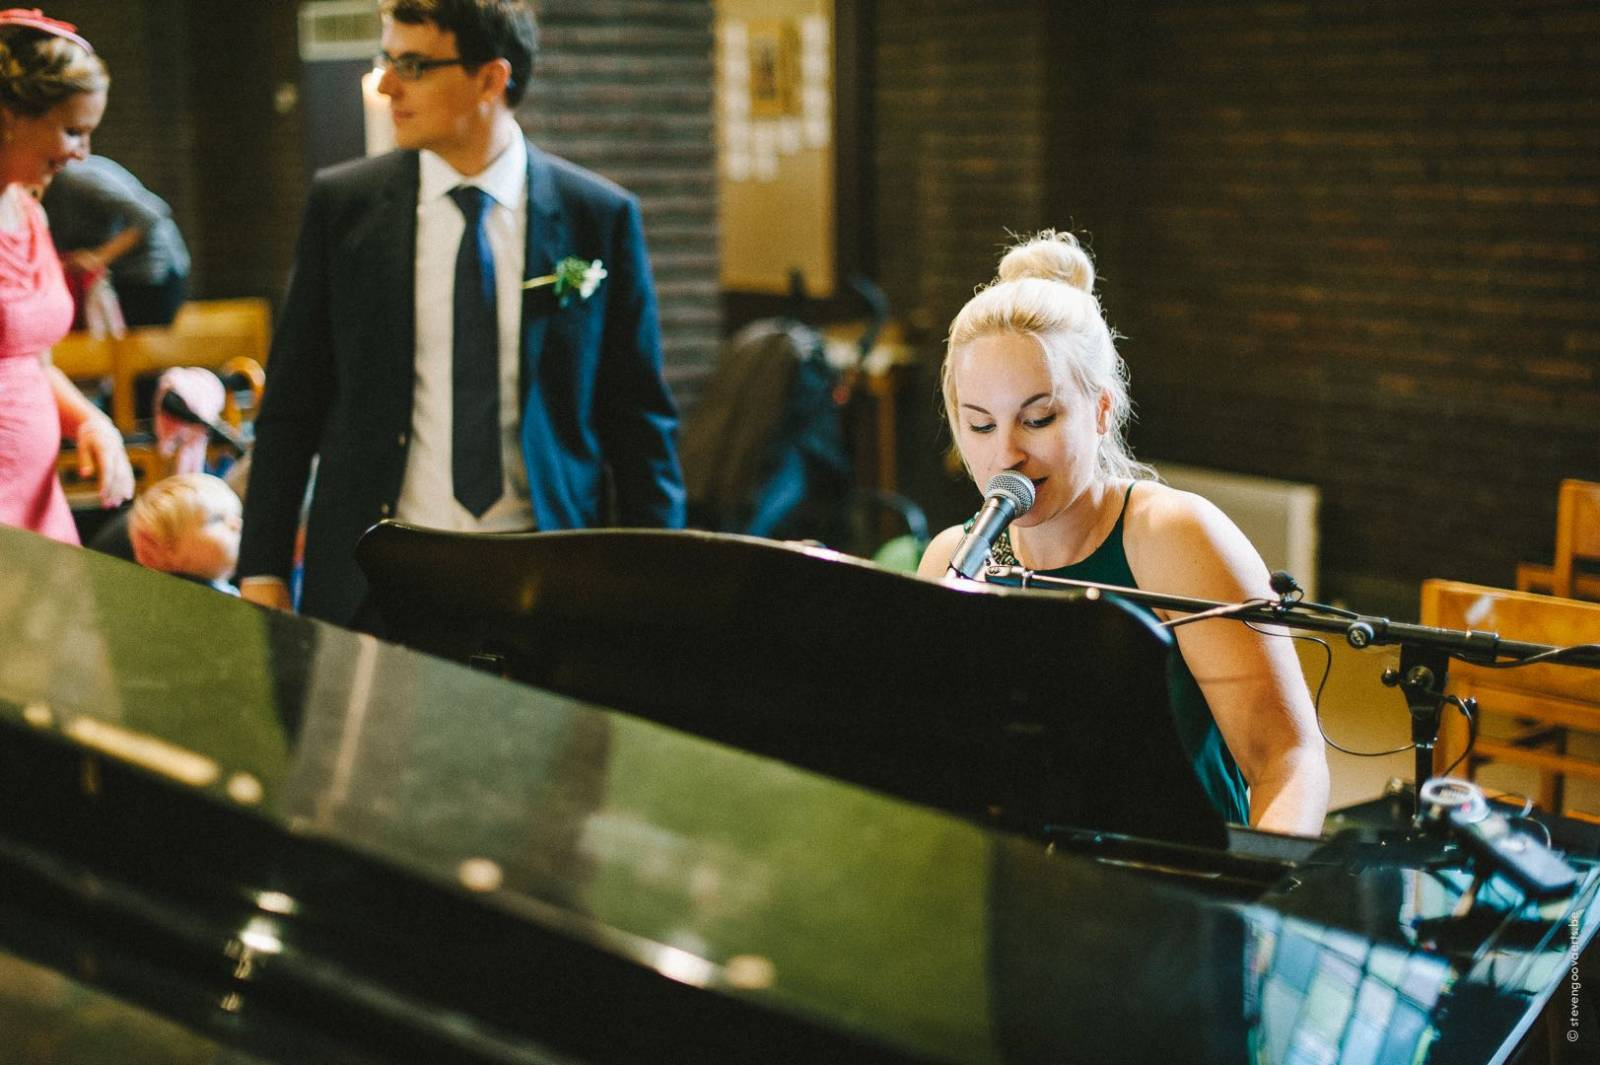 Ellis Grace Wilson - Muziek - House of Weddings  - 19